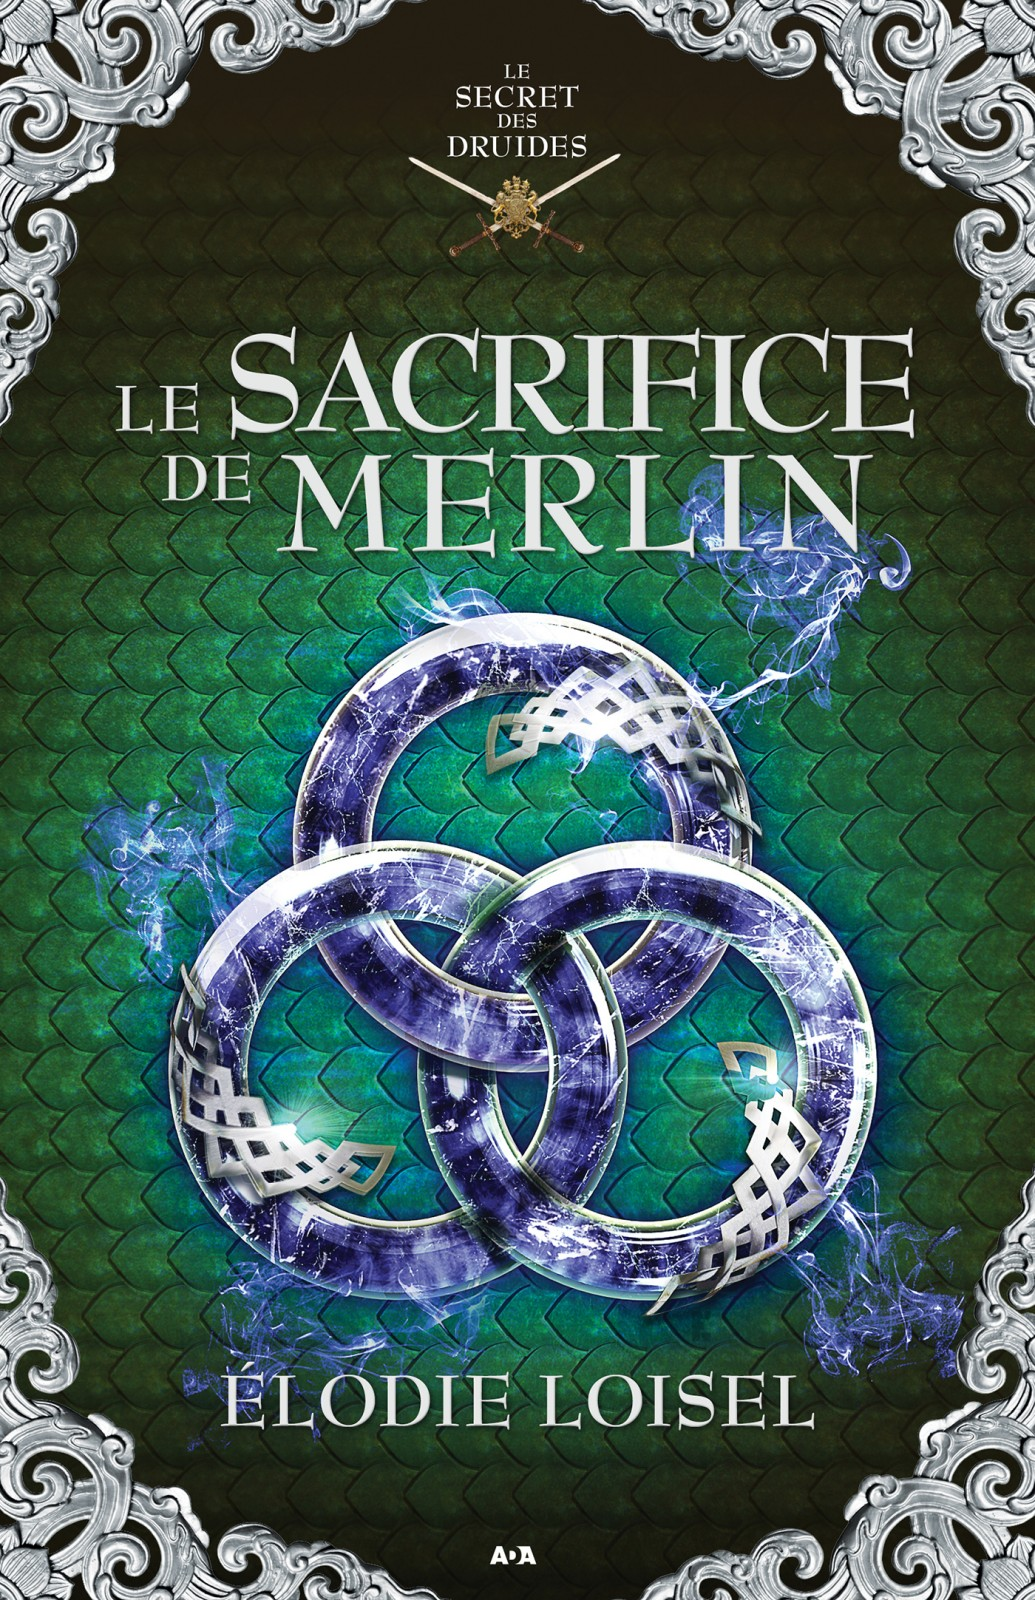 Le sacrifice de Merlin